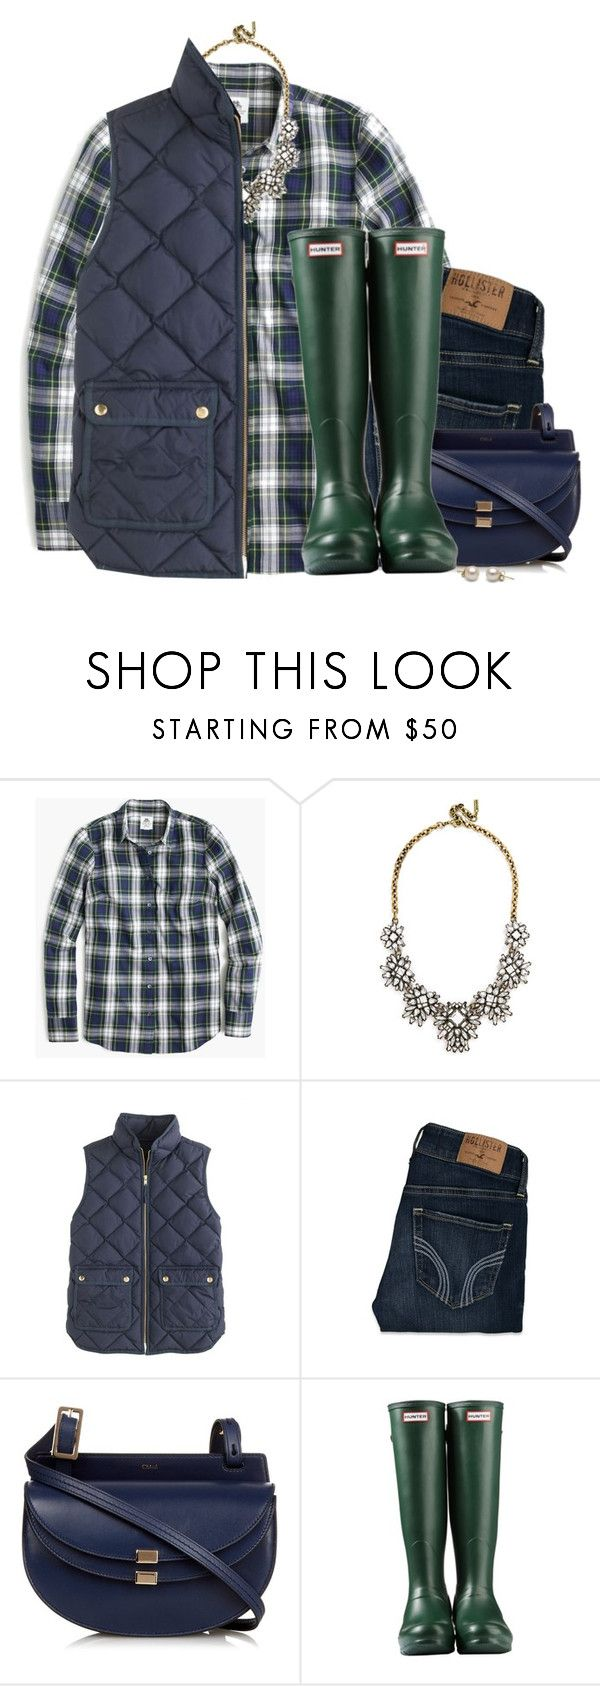 """""""J.crew flannel shirt & vest with green Hunter boots"""" by steffiestaffie ❤ liked on Polyvore featuring J.Crew, BaubleBar, Hollister Co., Chloé and Hunter"""